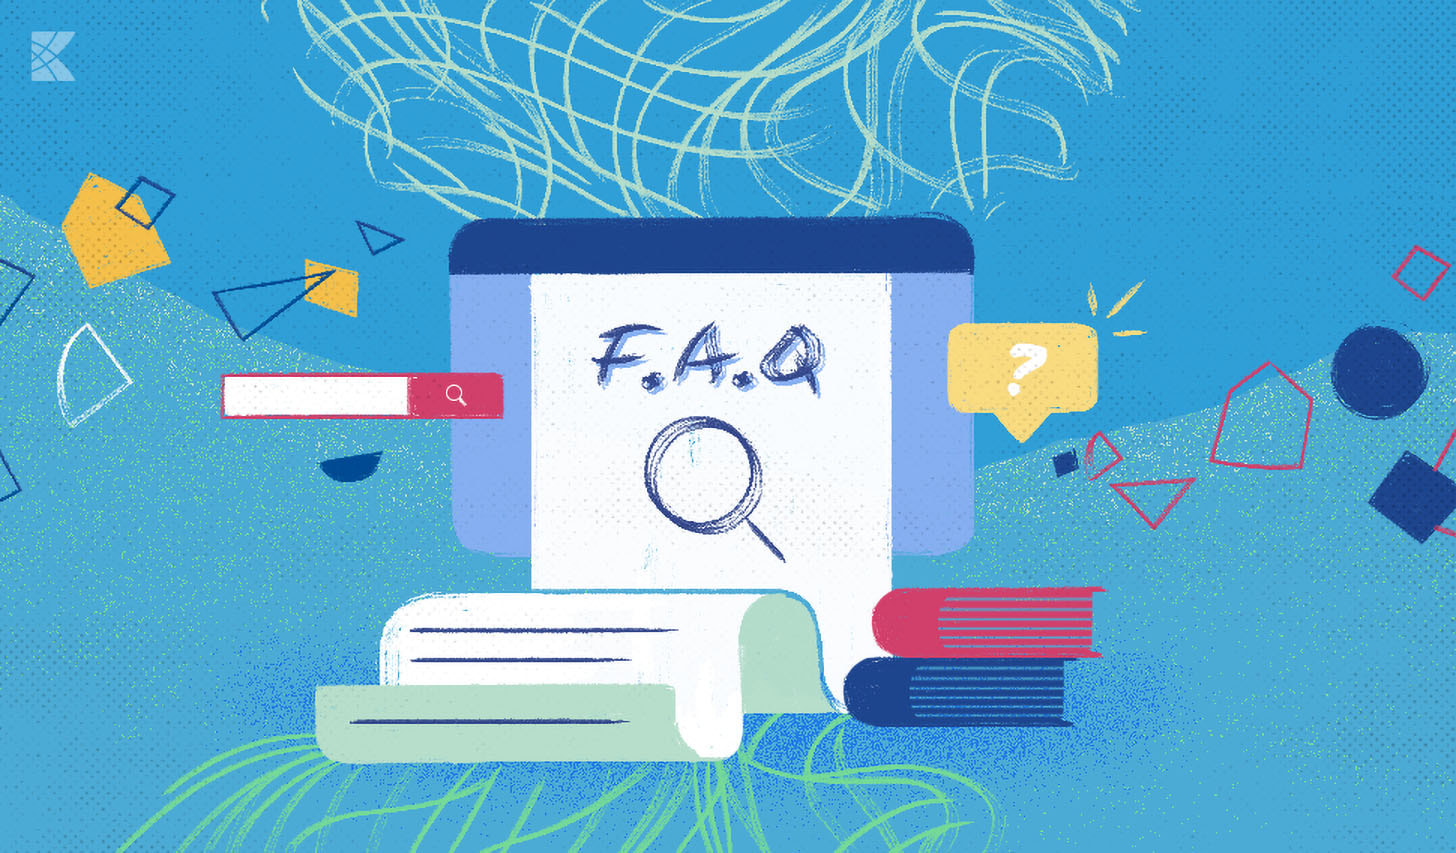 Create-Your-Own-FAQ-Template-from-Scratch